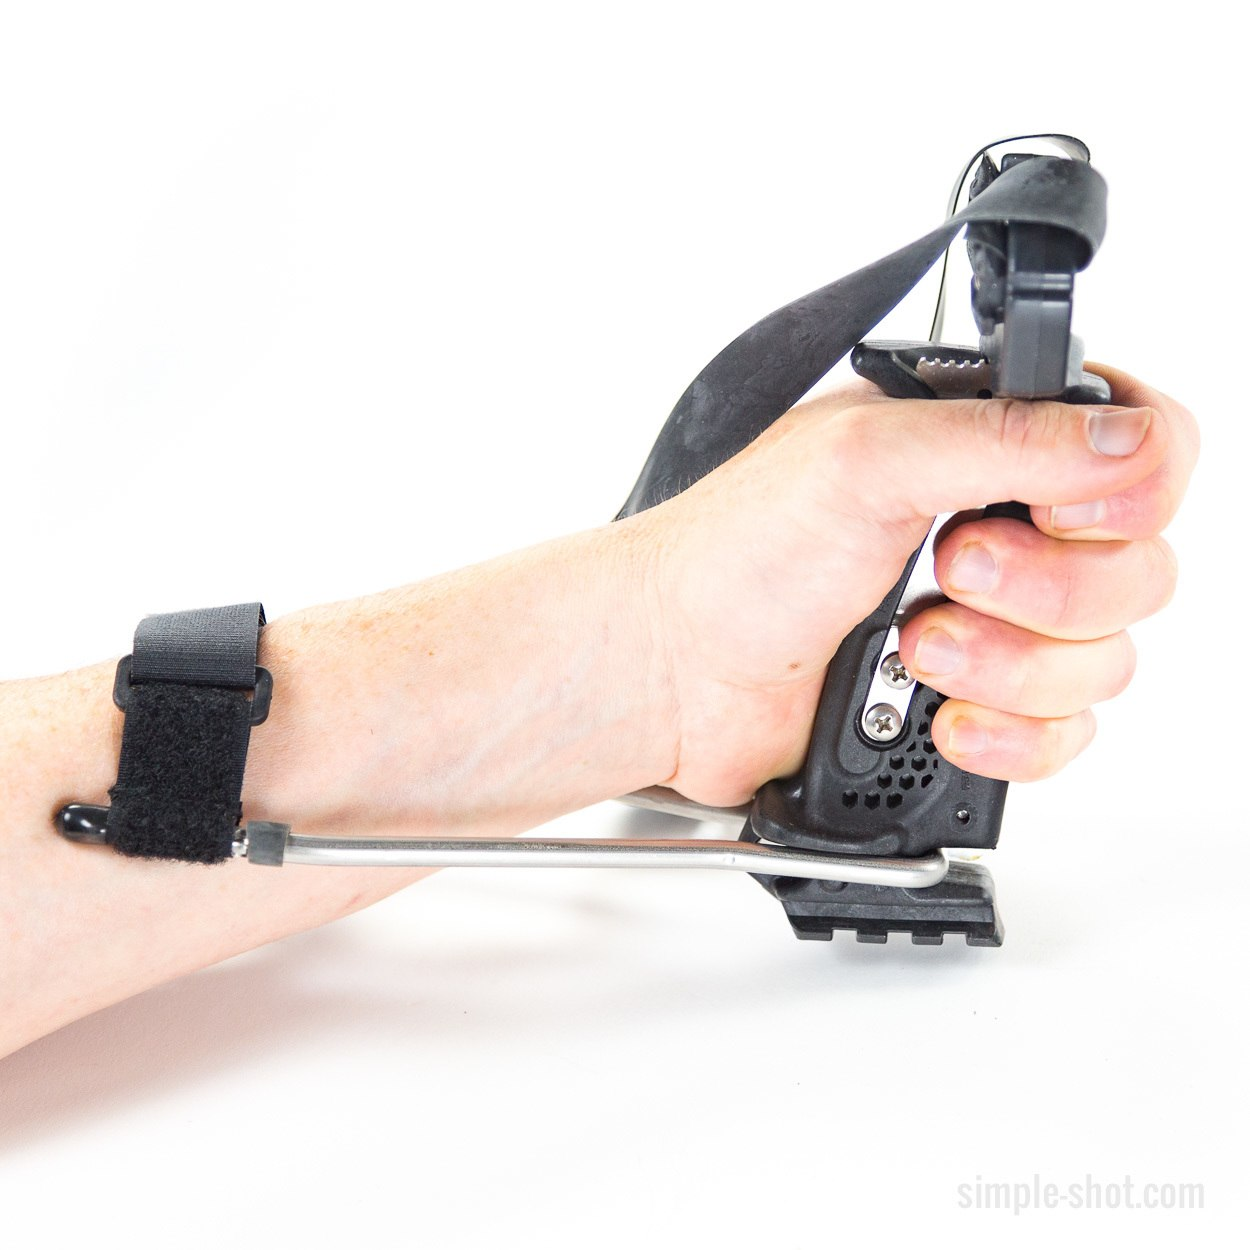 Powerful grip for hunting with slingshots! The Wrist brace and hammer grip mean power!